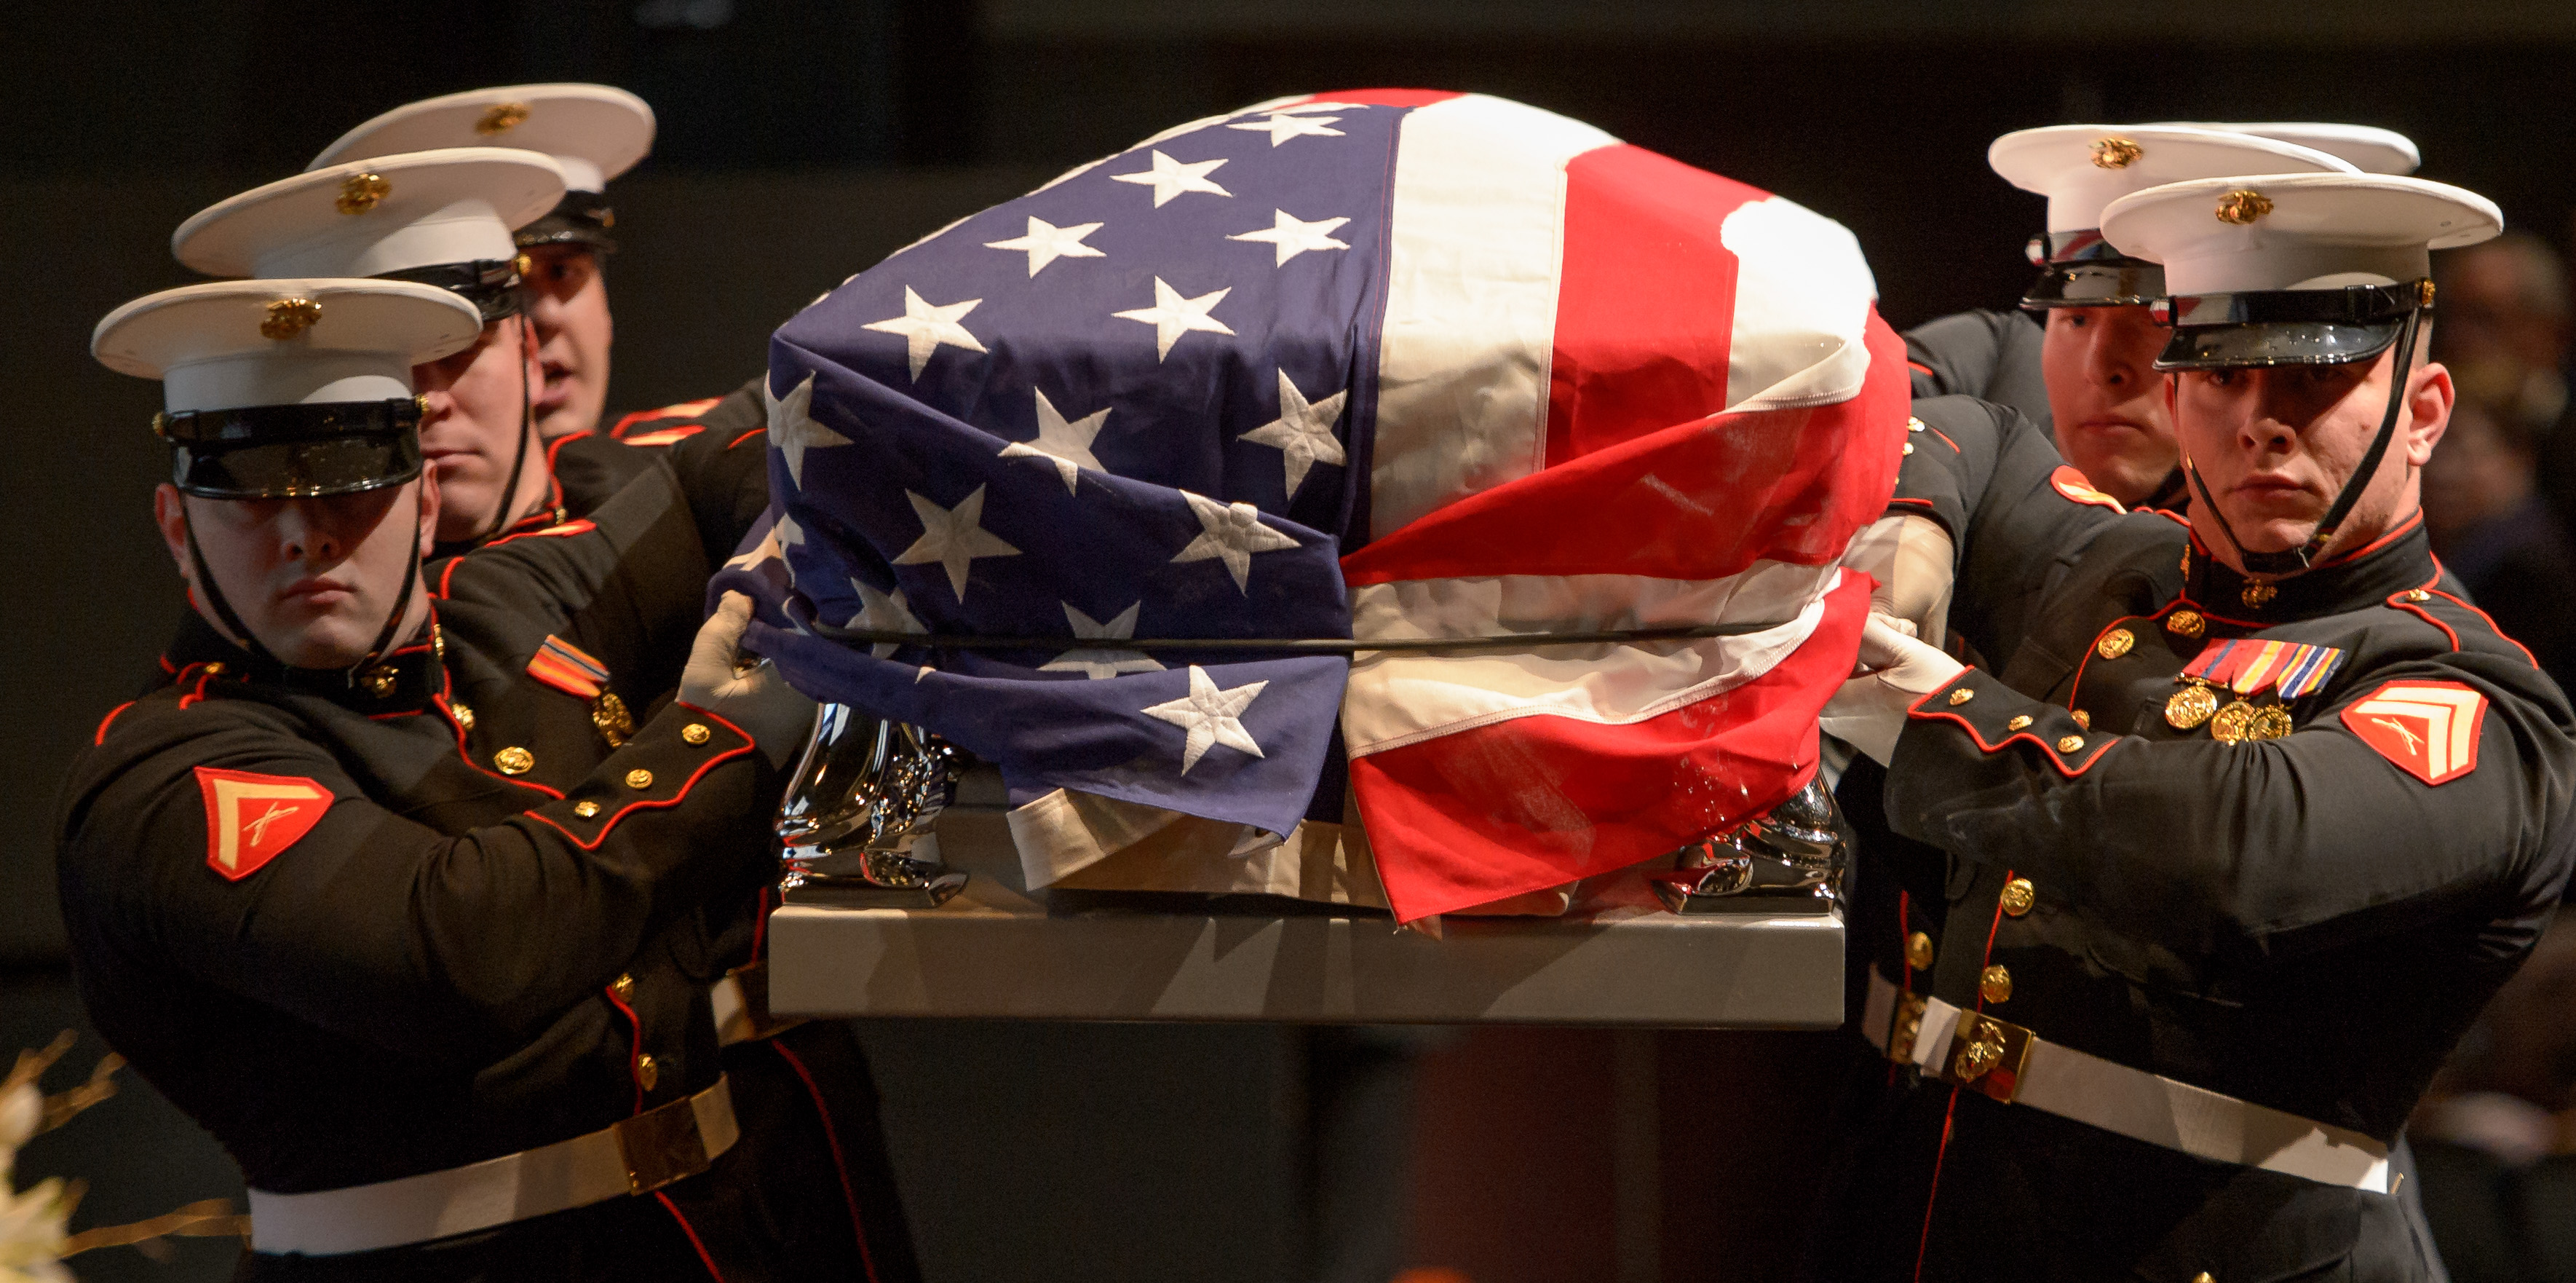 Marine Corp pallbearers bring carry former astronaut and U.S. Senator John Glenn into a service to celebrate his life, Saturday, December 17, 2016 at The Ohio State University, Mershon Auditorium in Columbus. Photo Credit: (NASA/Bill Ingalls)